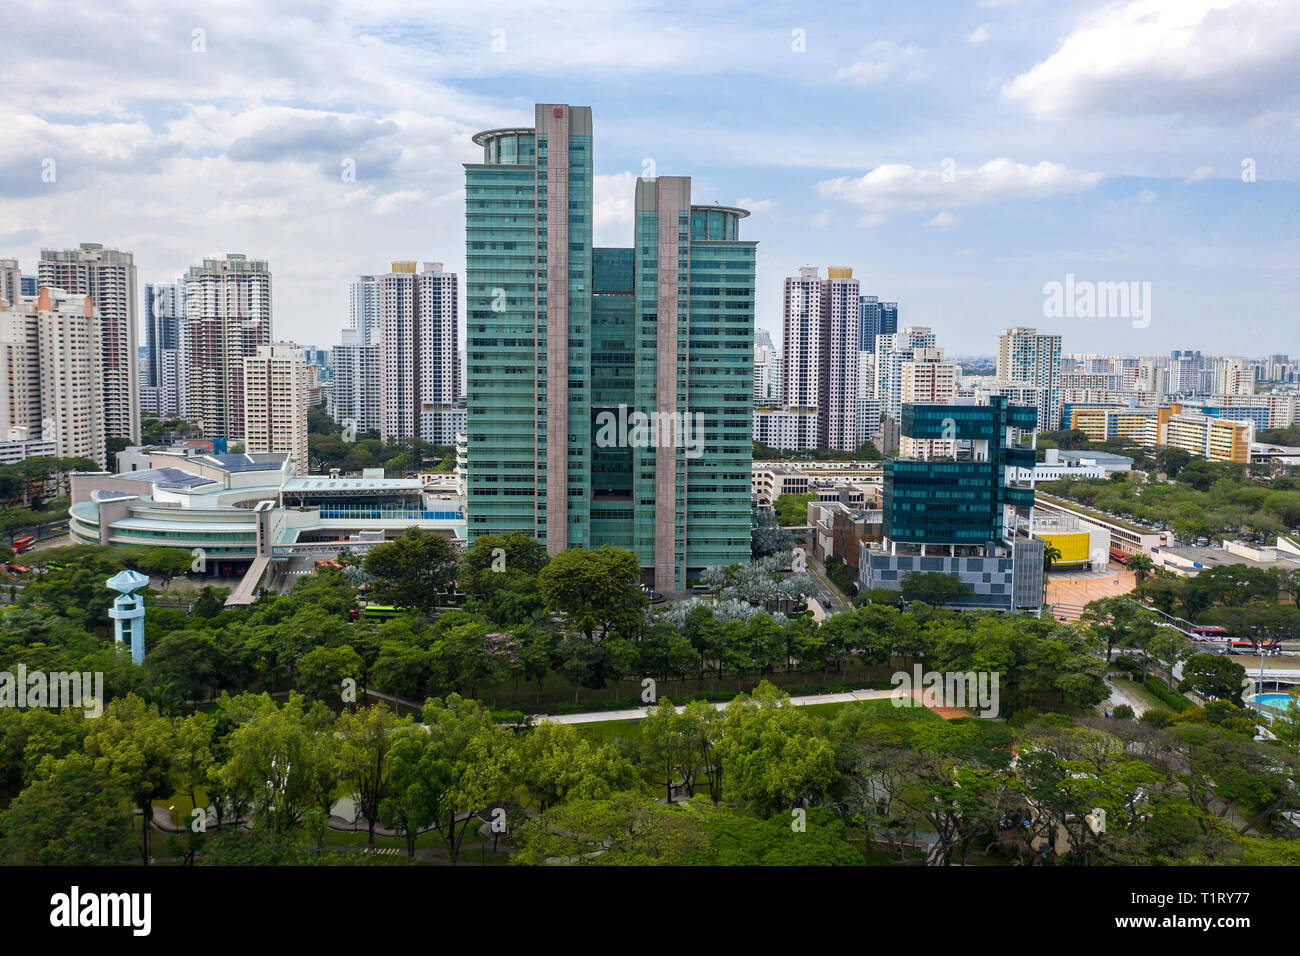 Aerial cityscape view of HDB Hub and other architectures building at Toa Payoh. - Stock Image